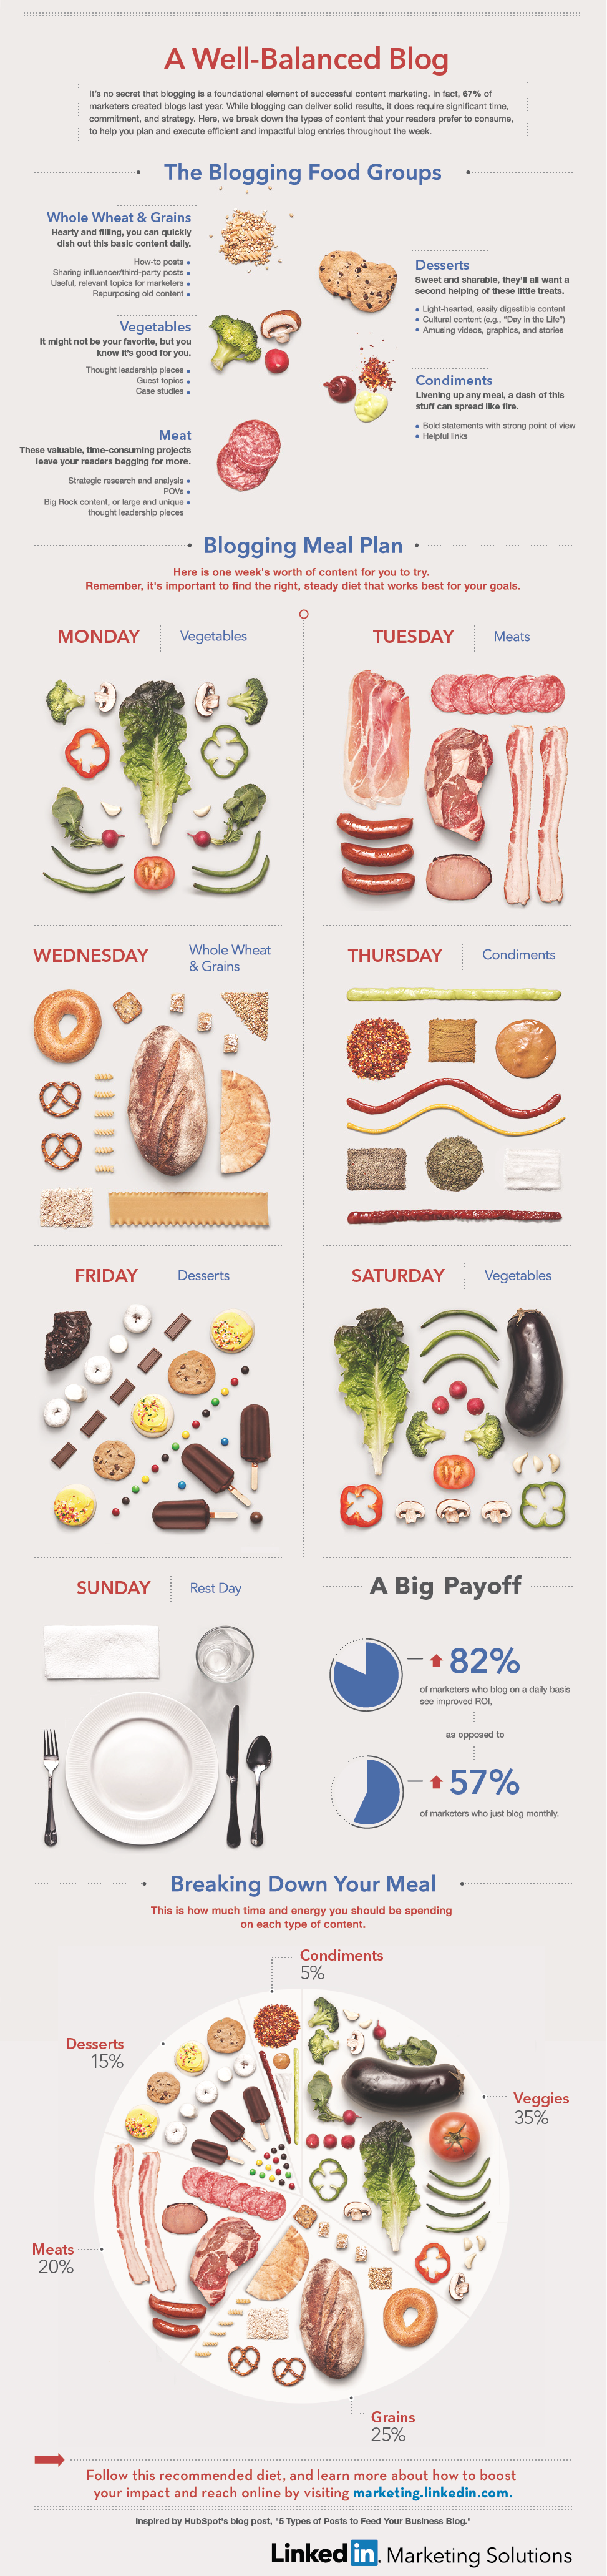 Secrets Of A Well Balanced Blogging Diet - infographic